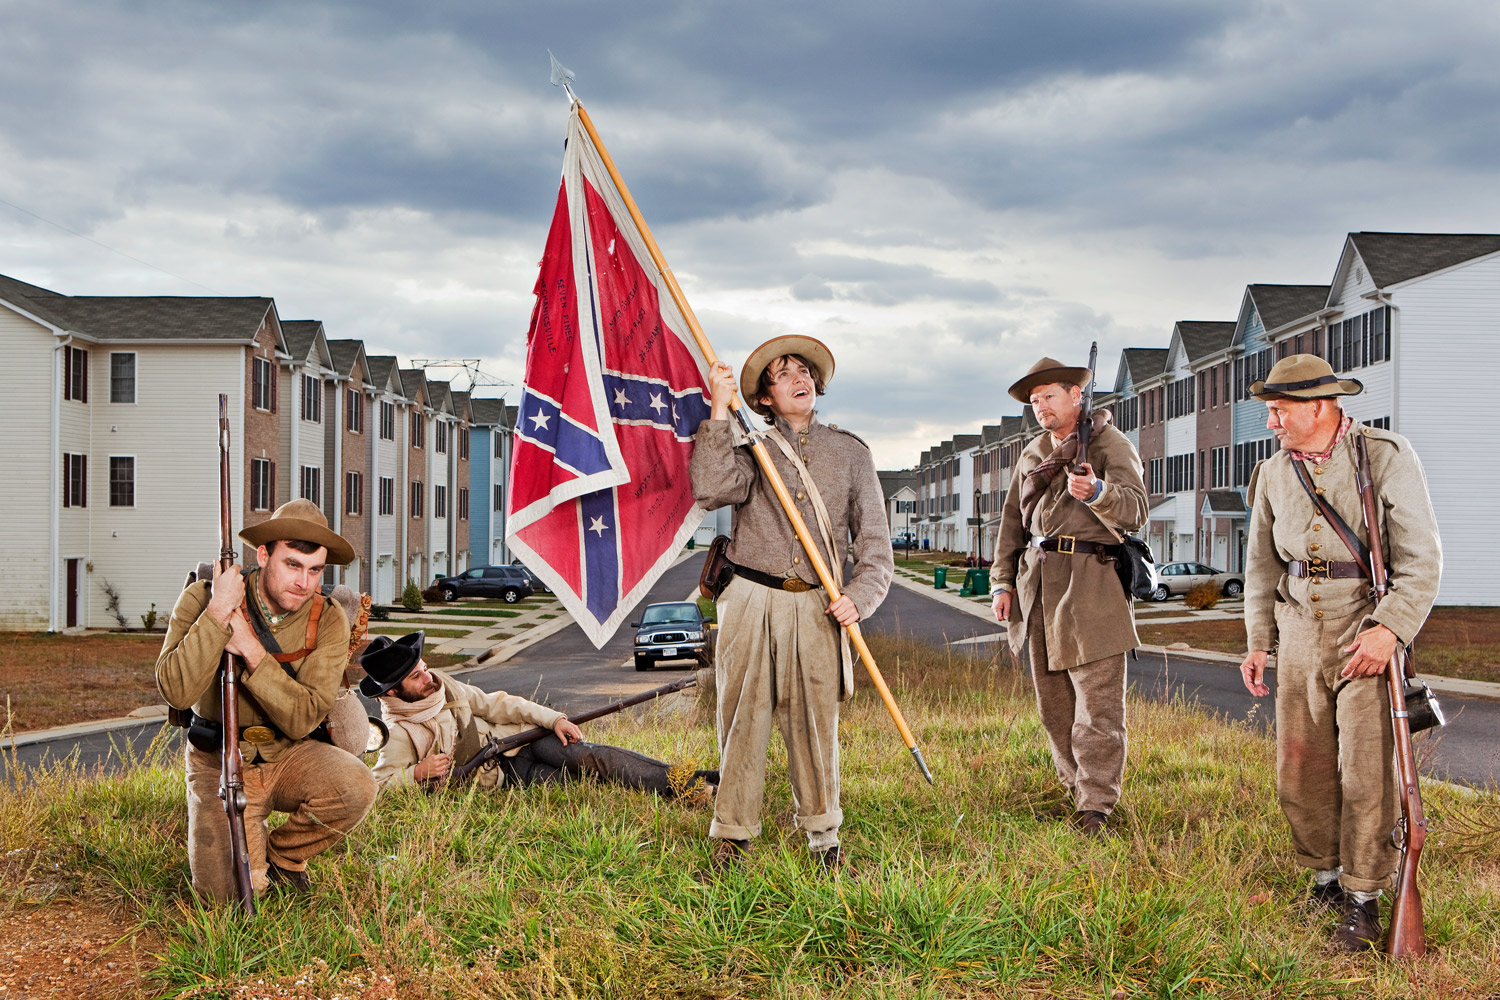 Locust Grove, Va.                               Confederate re-enactors pose at the Germanna Heights apartments. General Ulysses Grant and Robert E. Lee clashed for the first time in central Virginia on May 4, 1864, leaving nearly 100,000 casualties over the following 50 days.